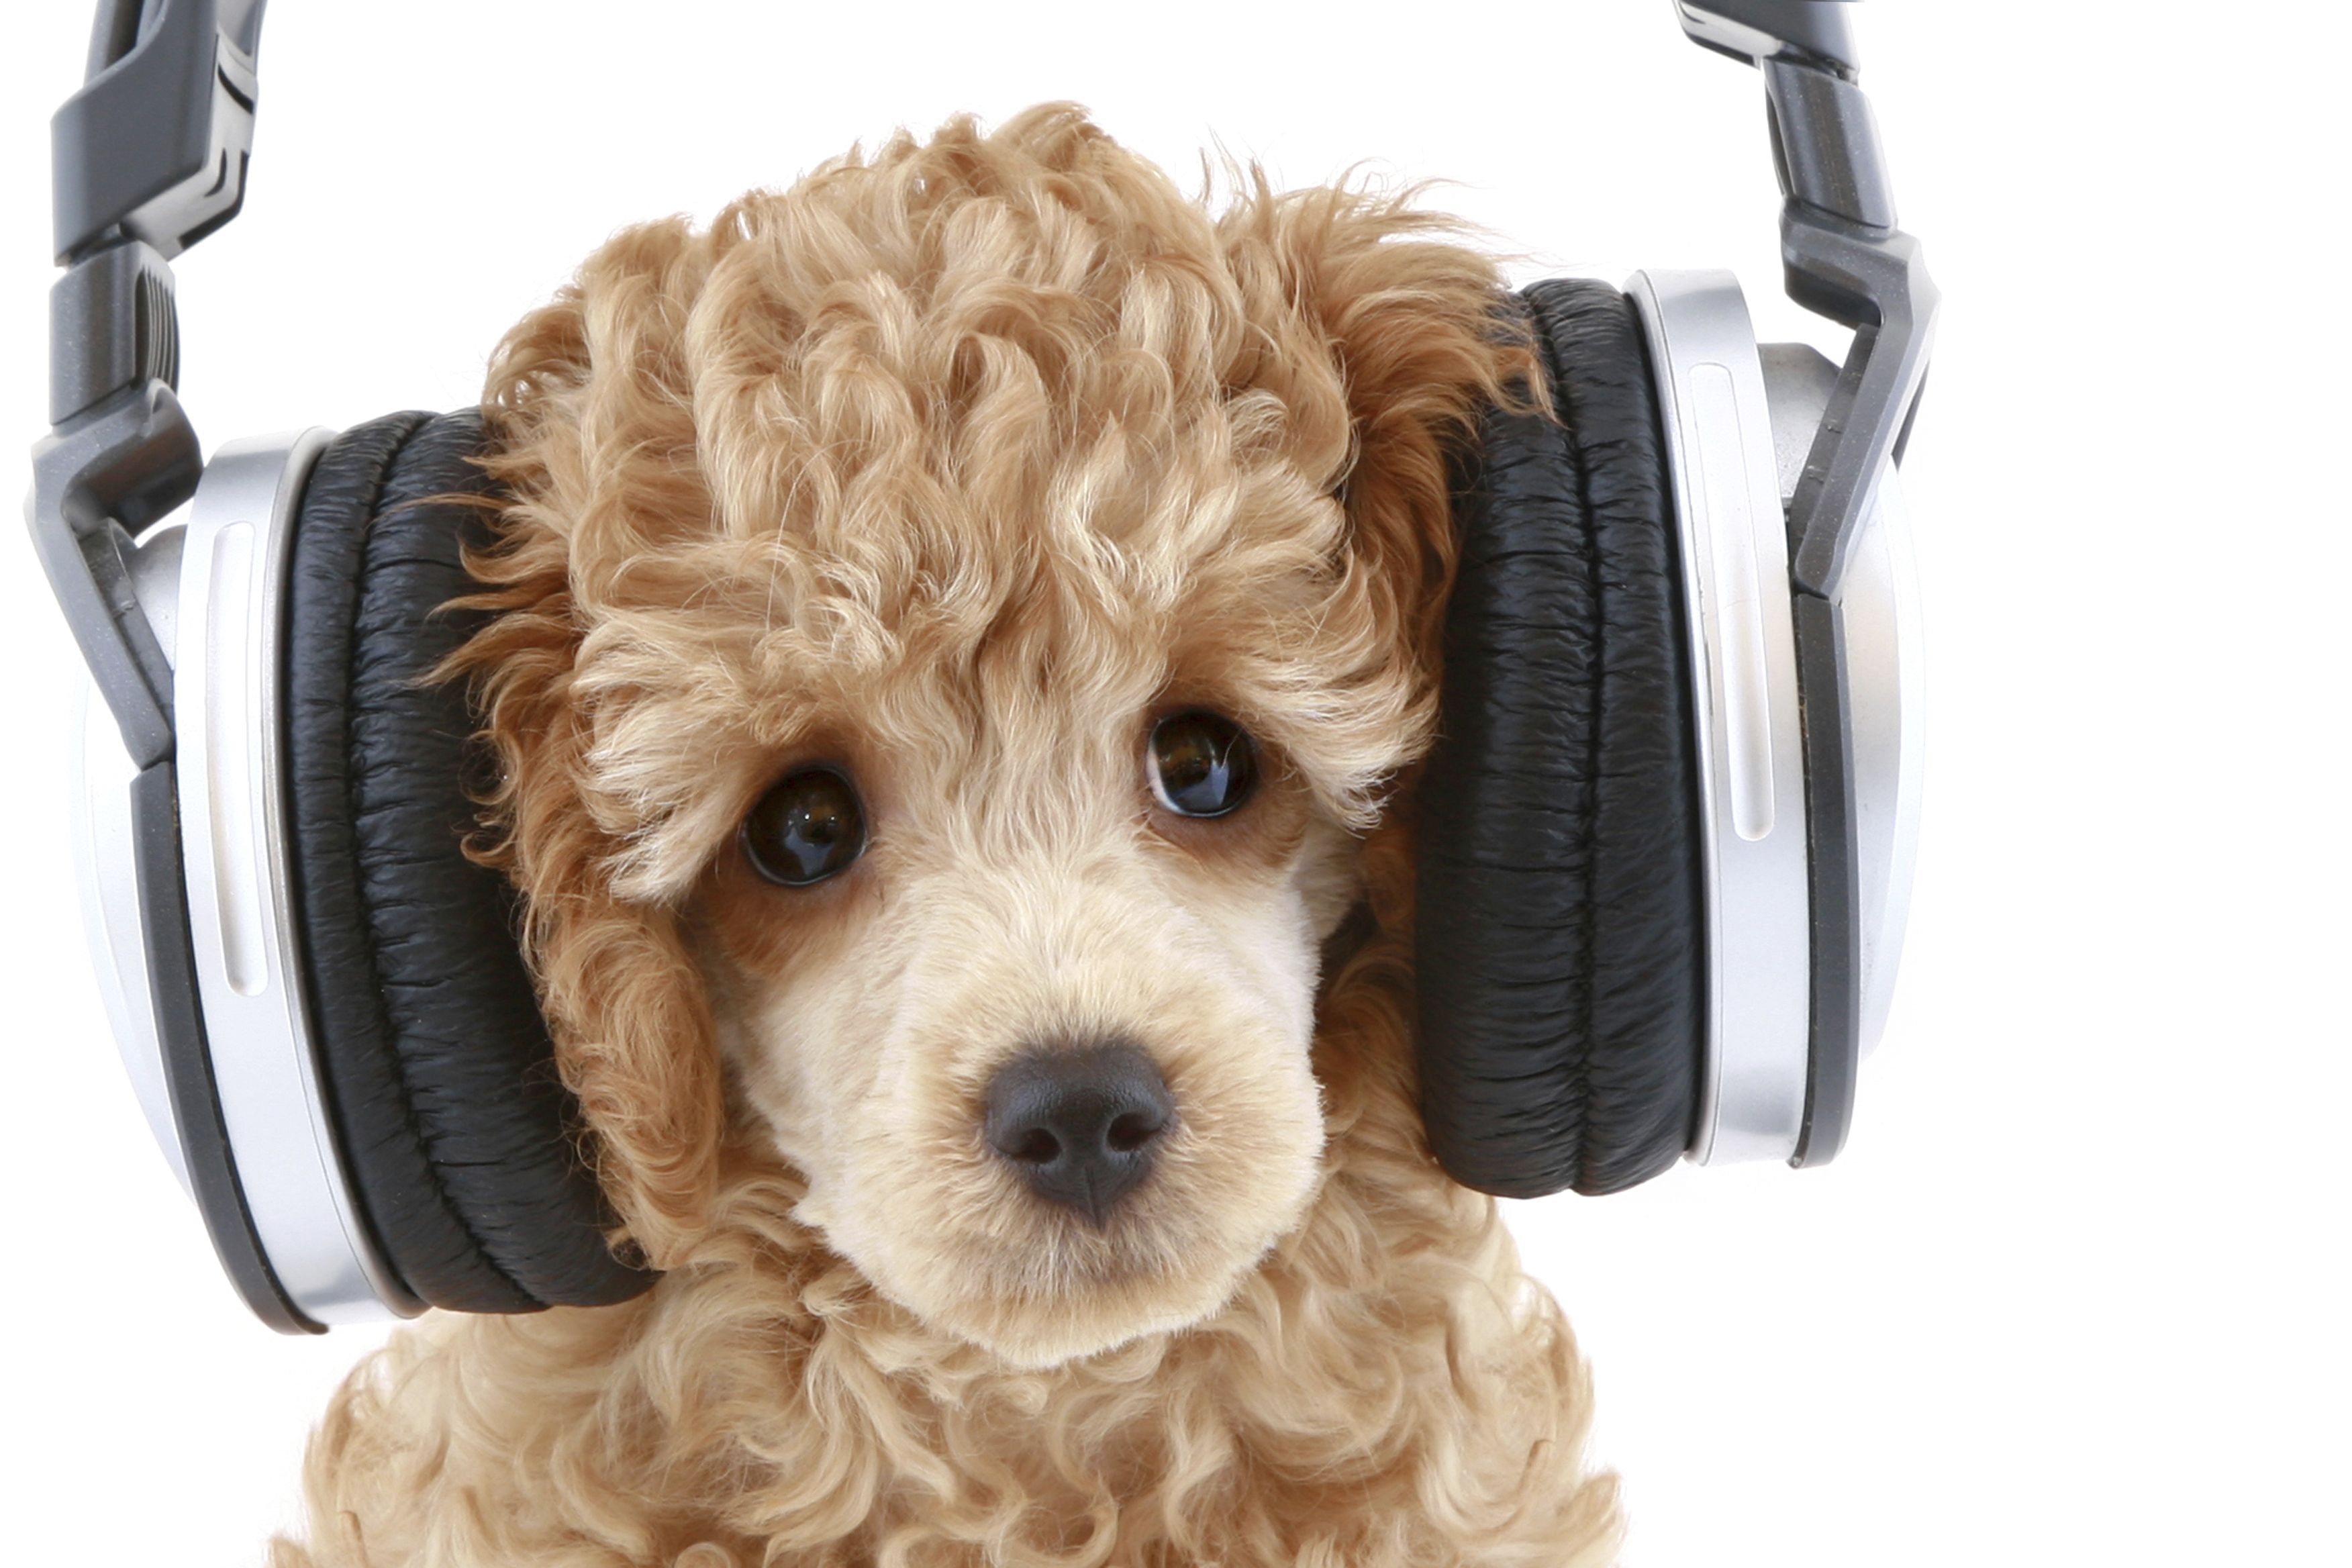 Image result for dogs wearing headphones